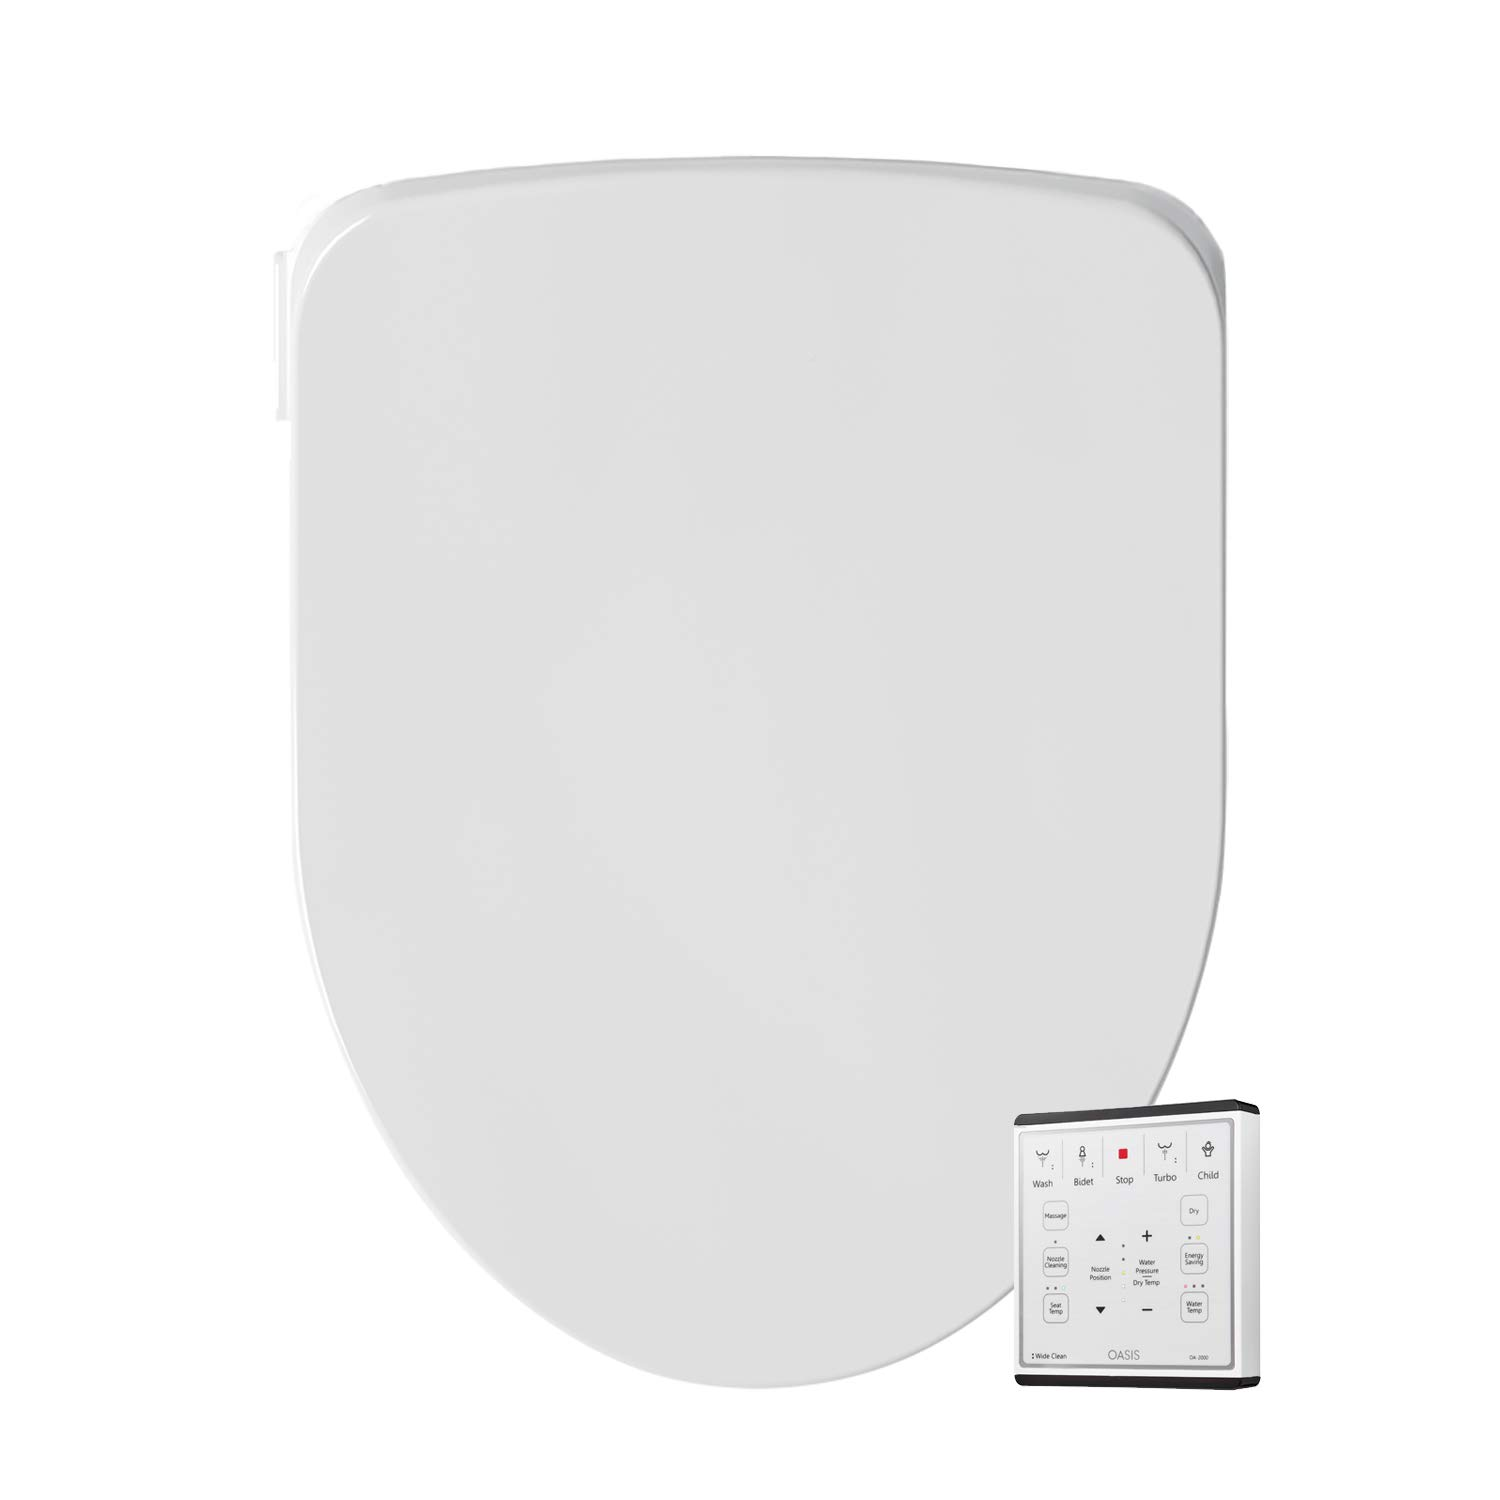 Oscillating and Fusion Warm Water Technology with Wireless Remote Turbo Wash Oasis by Bio Bidet Bidet Smart Toilet Seat in Round White with Stainless Steel Self-Cleaning Nozzle Nightlight